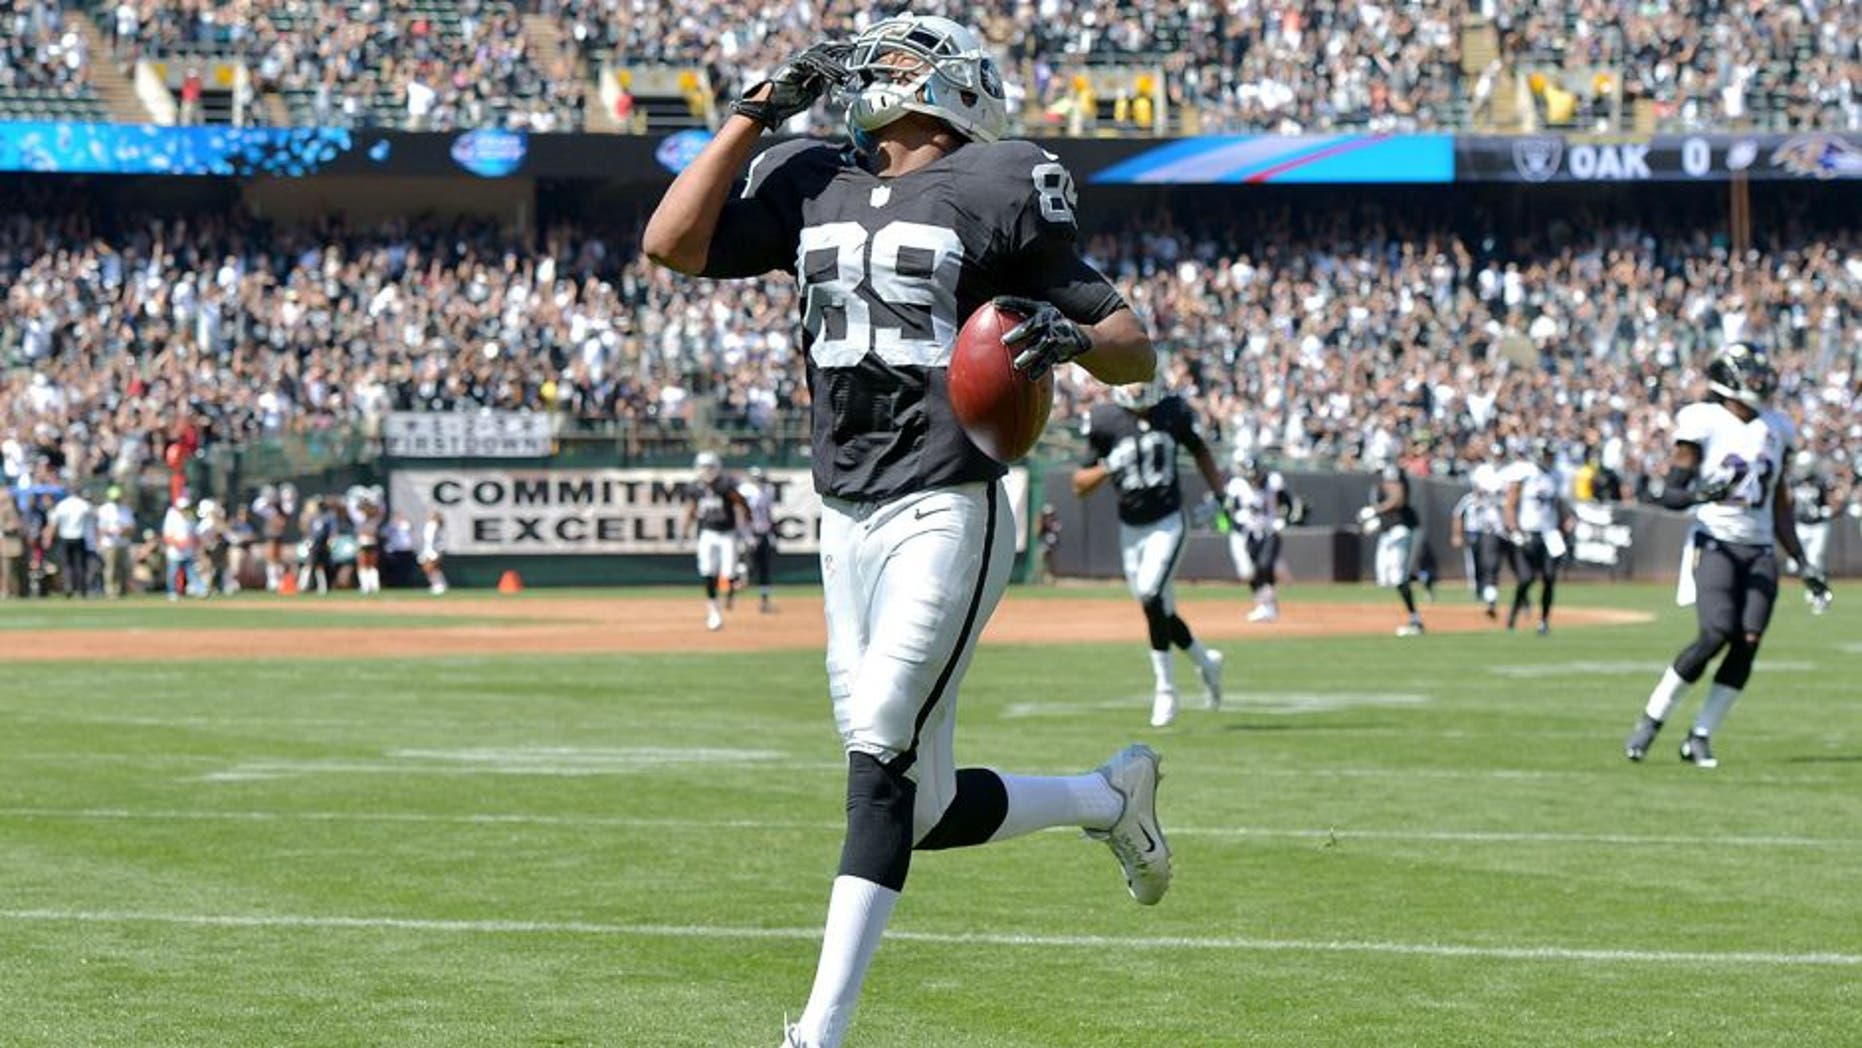 Sep 20, 2015; Oakland, CA, USA; Oakland Raiders receiver Amari Cooper (89) reacts after scoring on a 68-yard touchdown reception in the first quarter against the Baltimore Ravens as at O.co Coliseum. Mandatory Credit: Kirby Lee-USA TODAY Sports